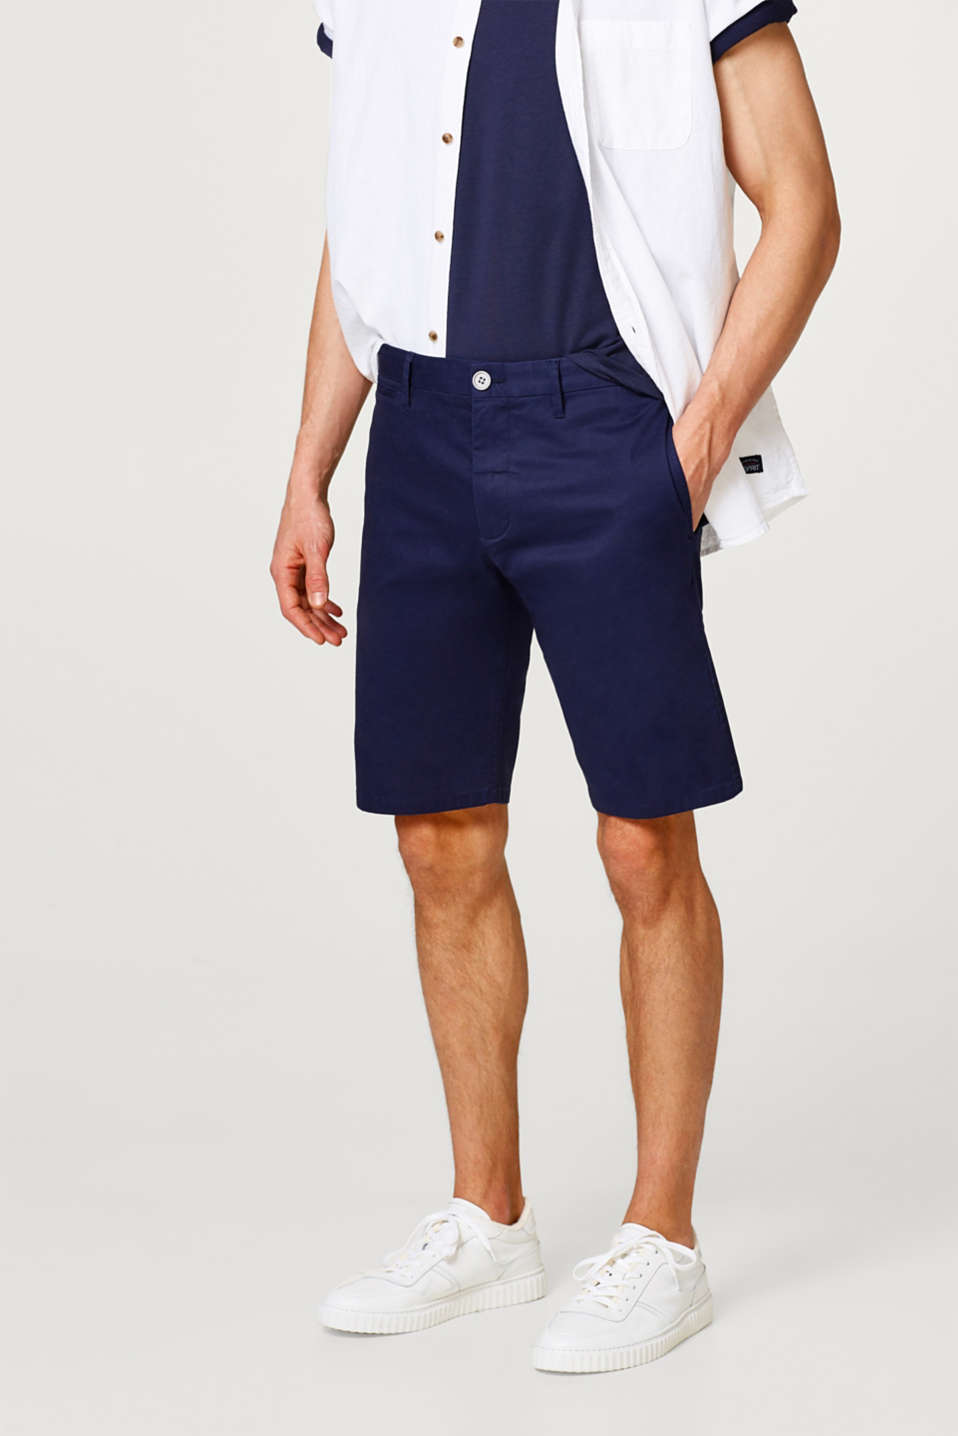 Esprit - Stretch shorts made of smooth cotton fabric